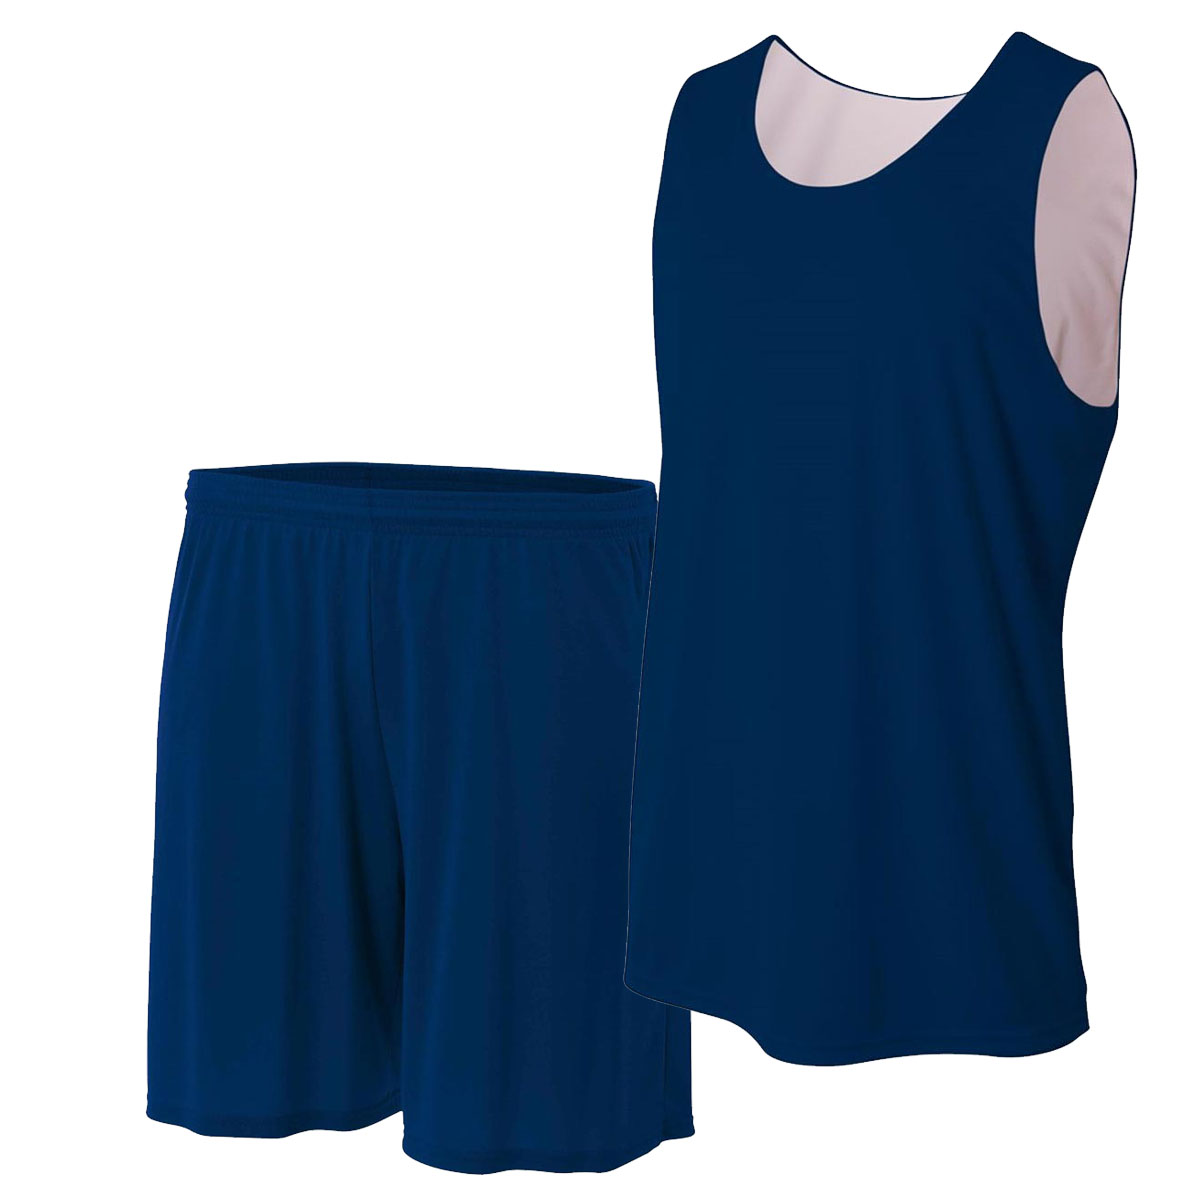 Reversible Basketball Uniforms Manufacturers in Salem